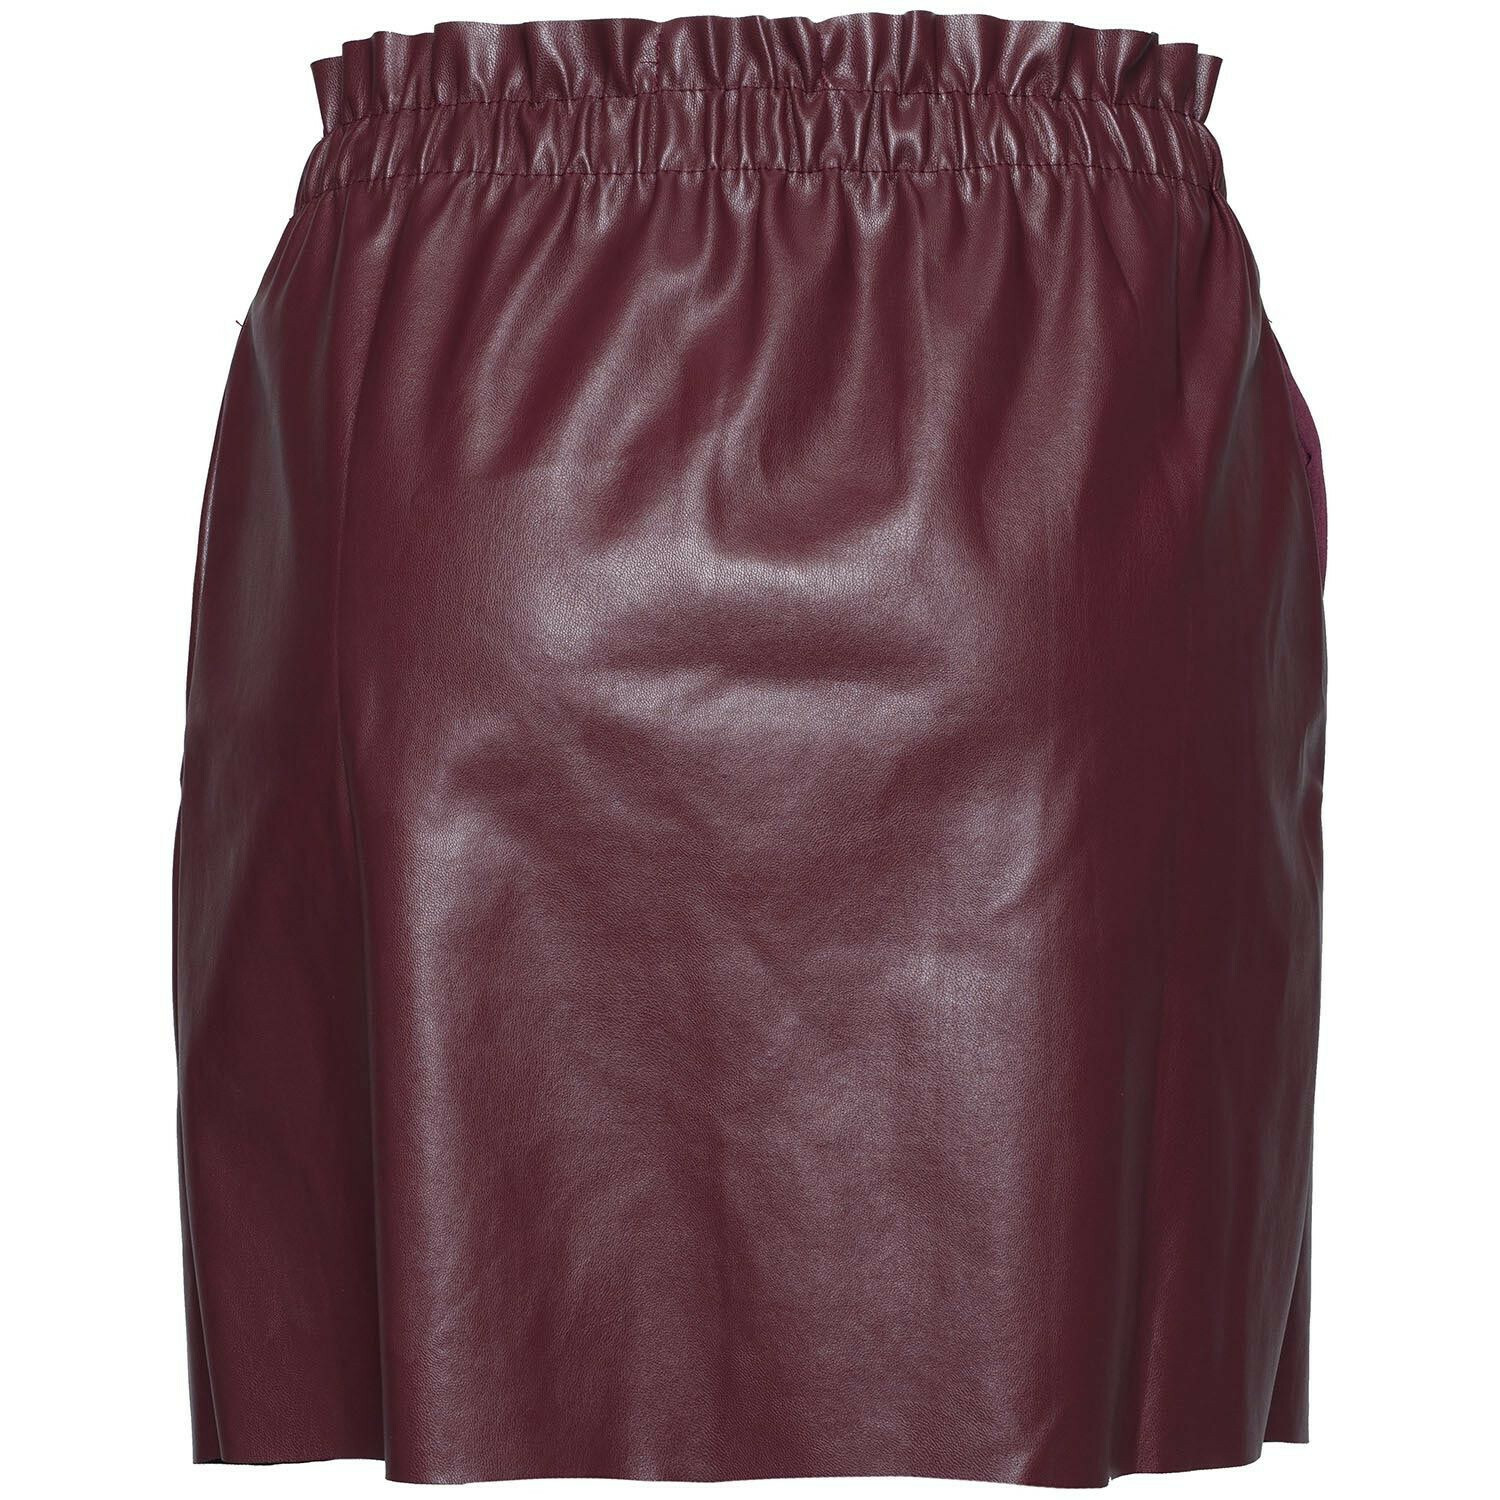 BURGUNDY GIRLIE SKIRT